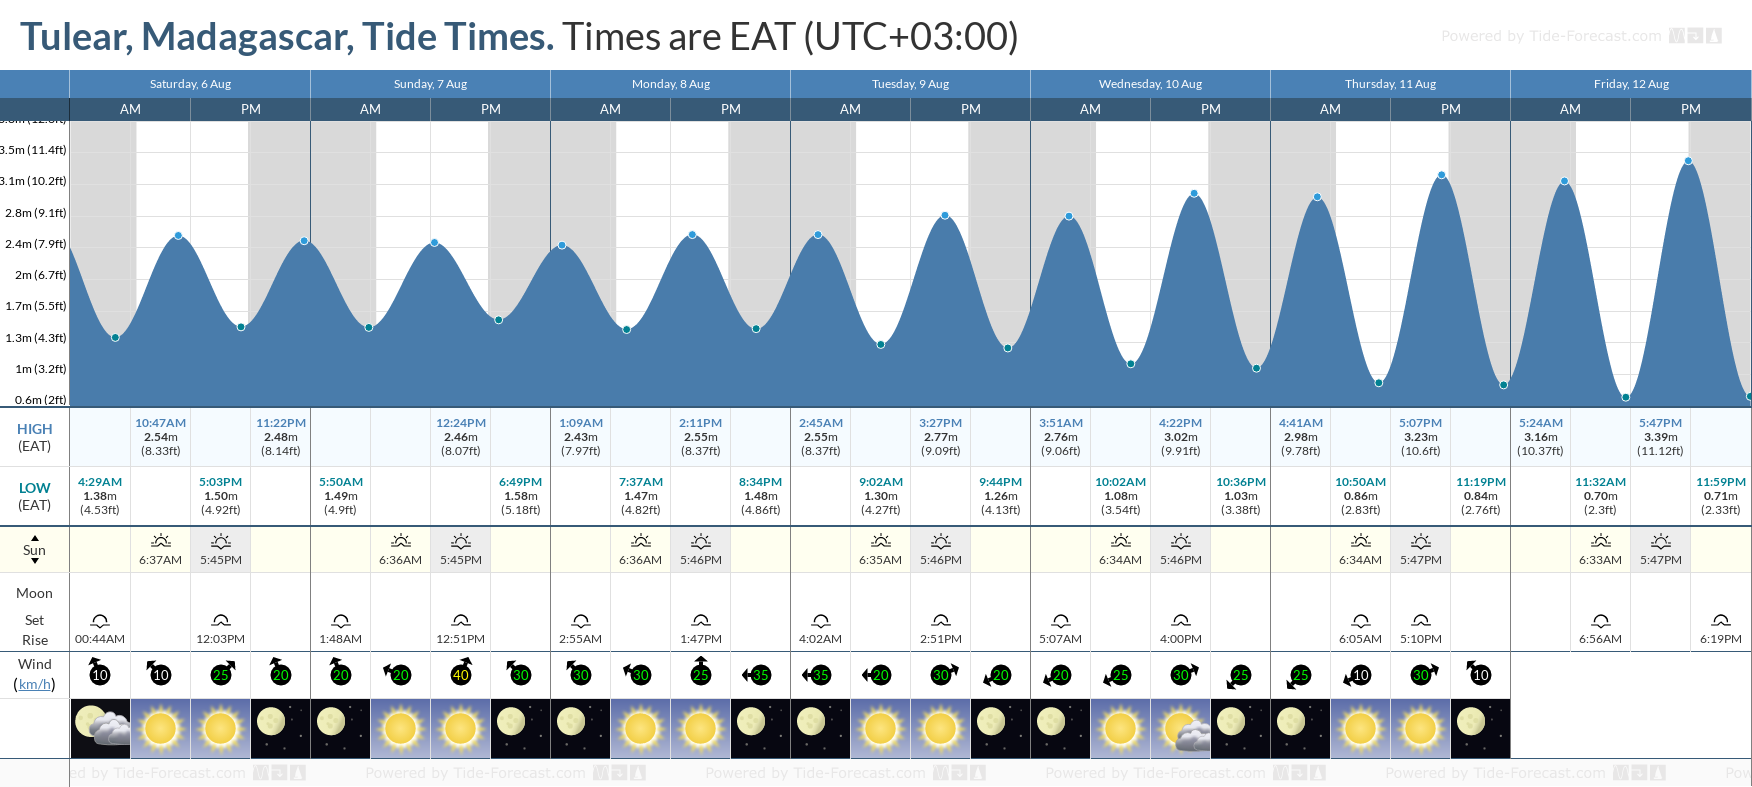 Tulear, Madagascar Tide Chart including high and low tide tide times for the next 7 days